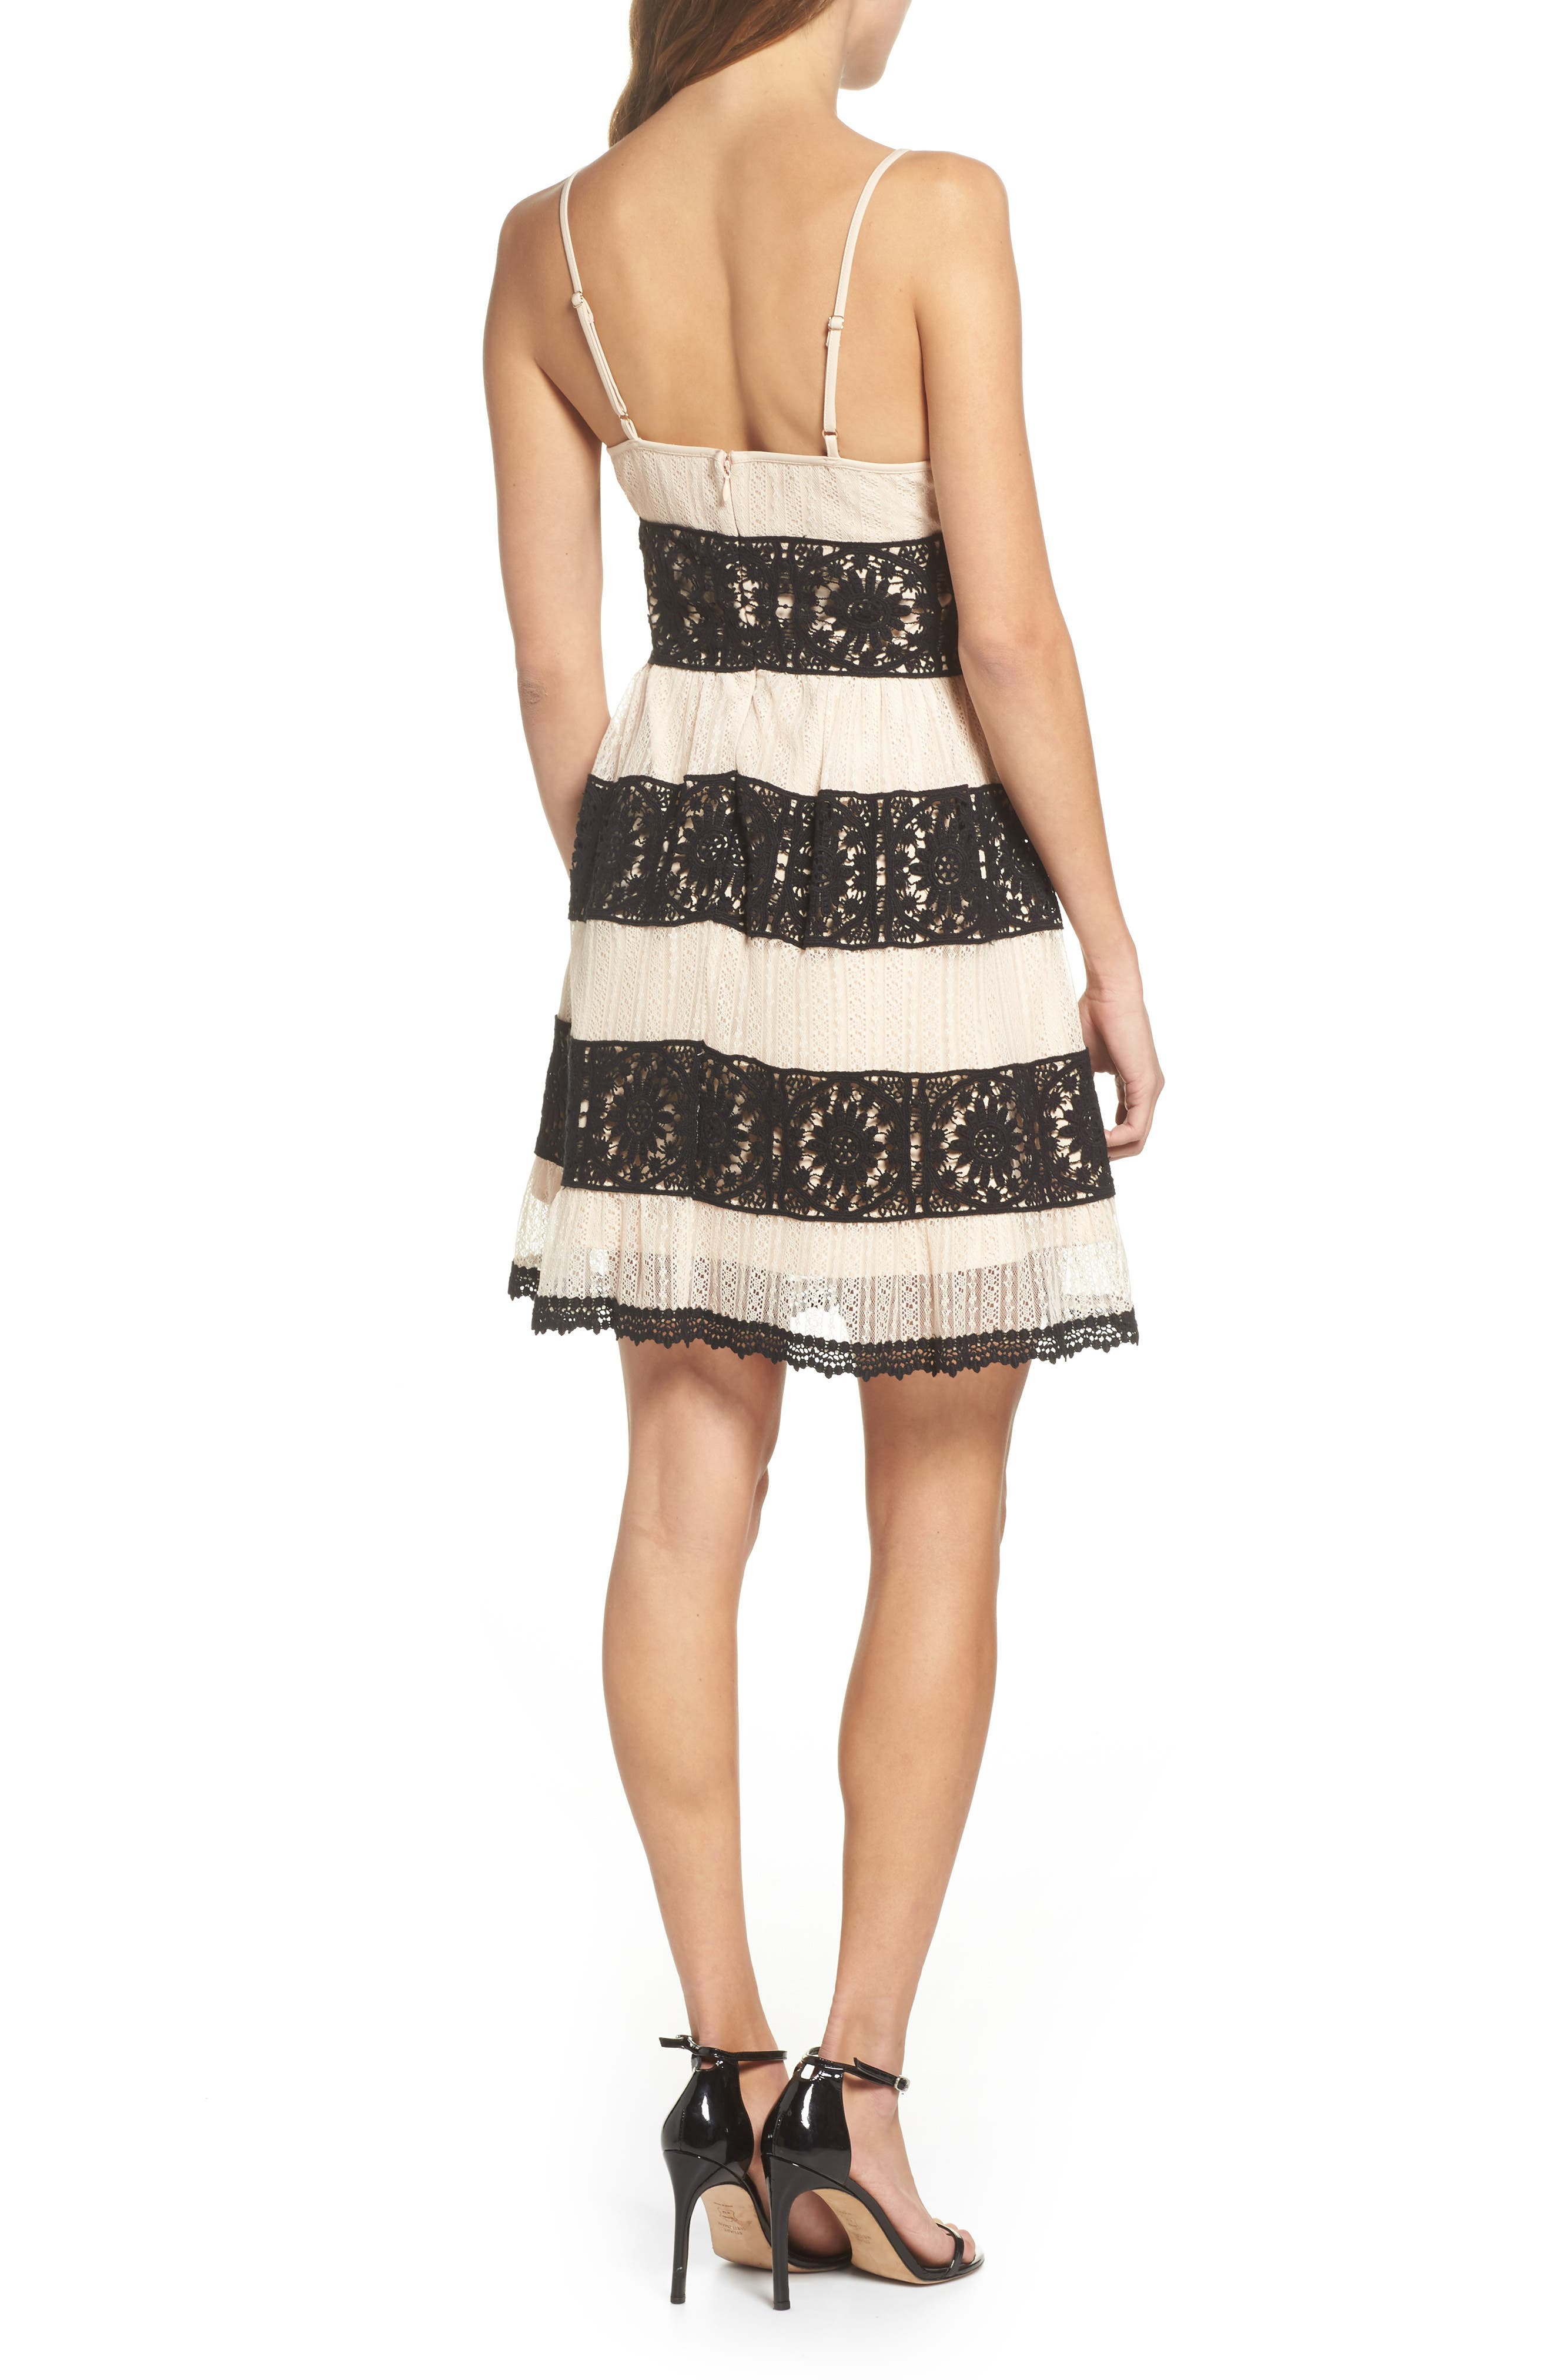 Ophelia Two-Tone Lace Fit & Flare Dress,                             Alternate thumbnail 2, color,                             Black/ Nude